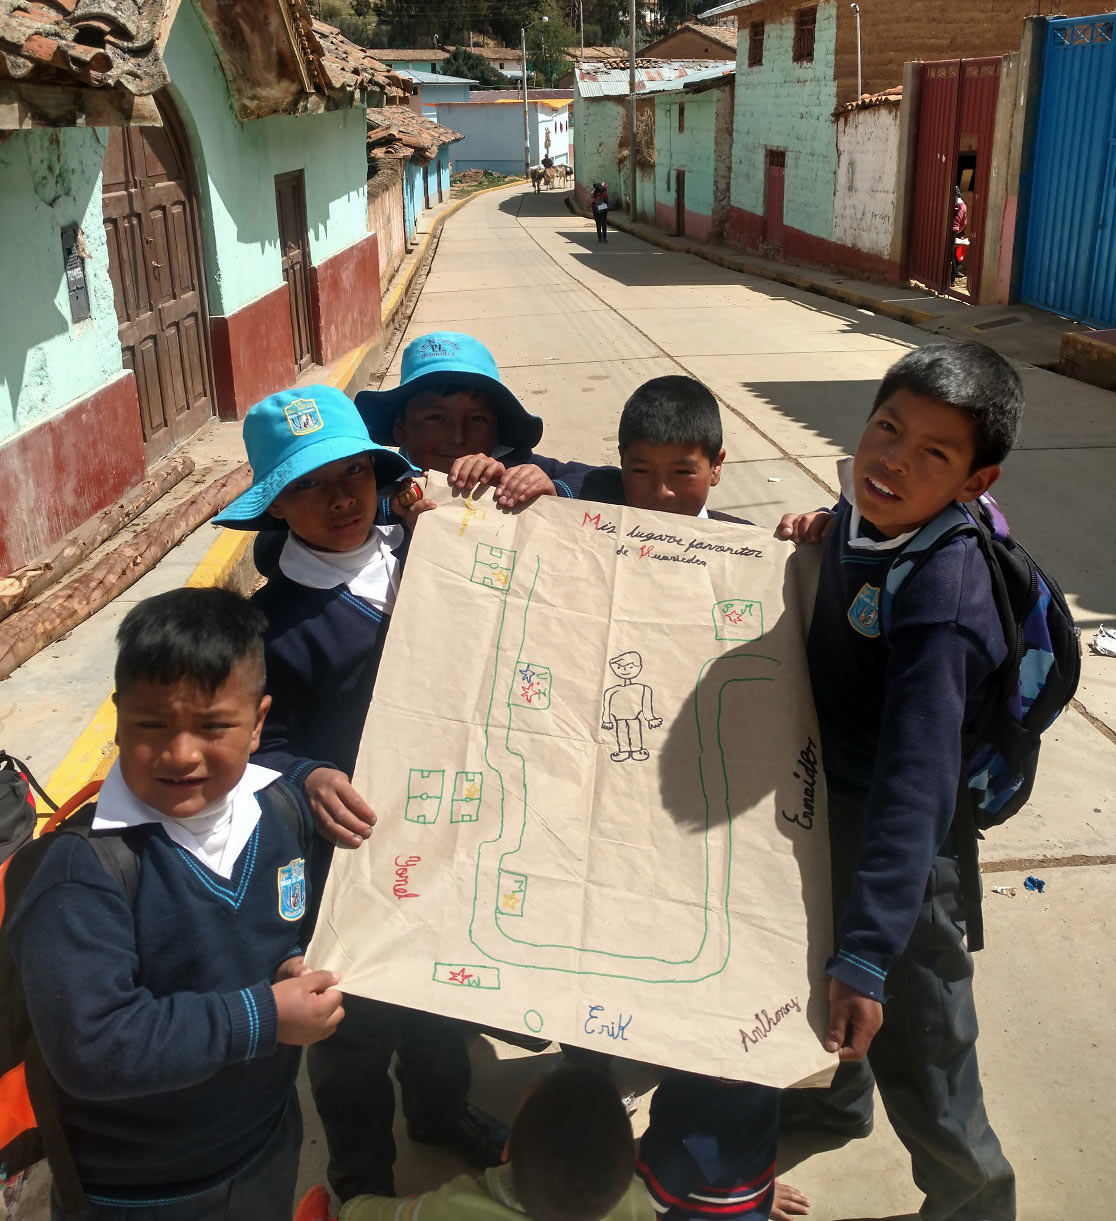 students from Premaria help the writer prepare a community map